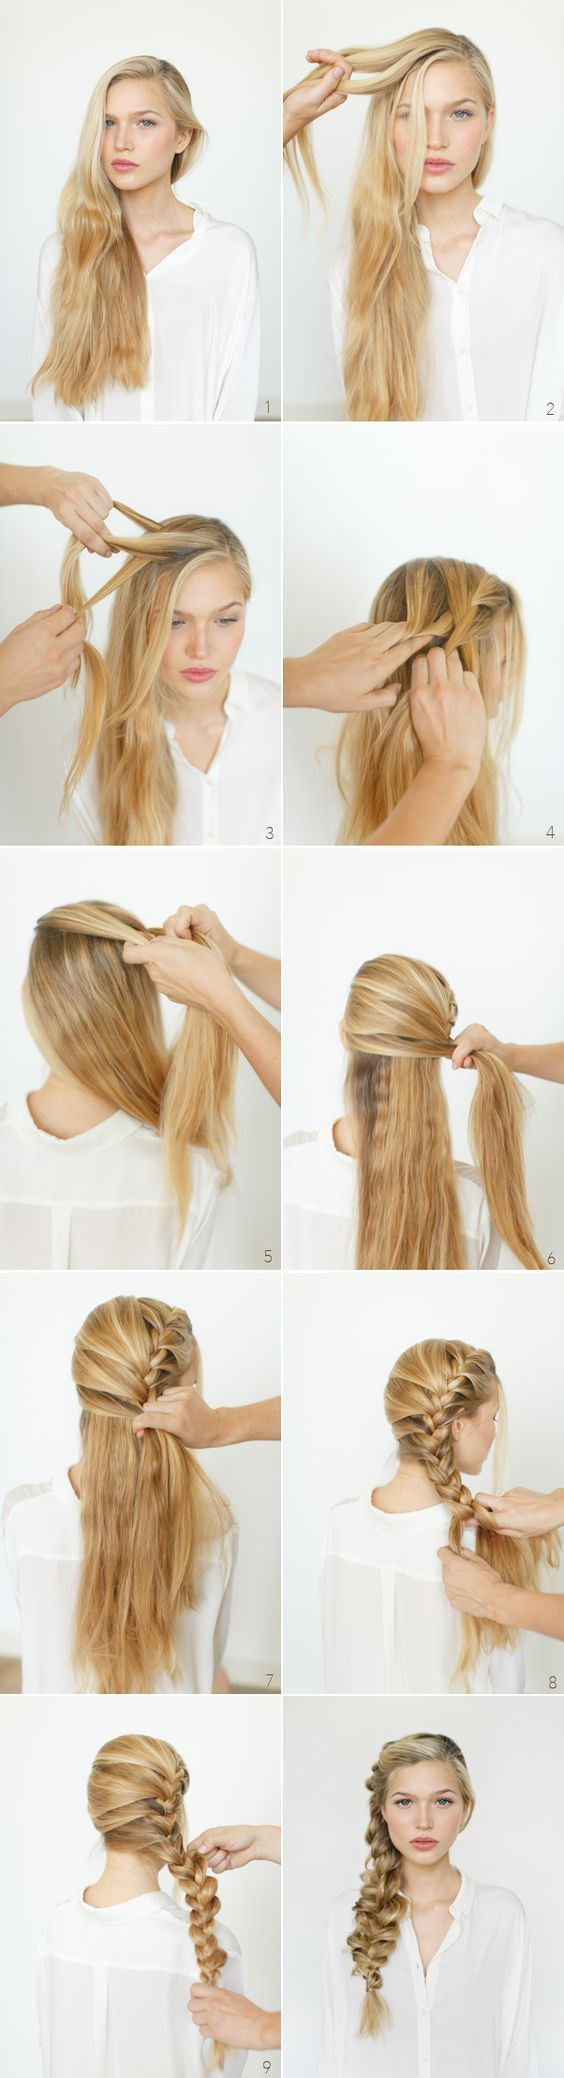 Side braid: